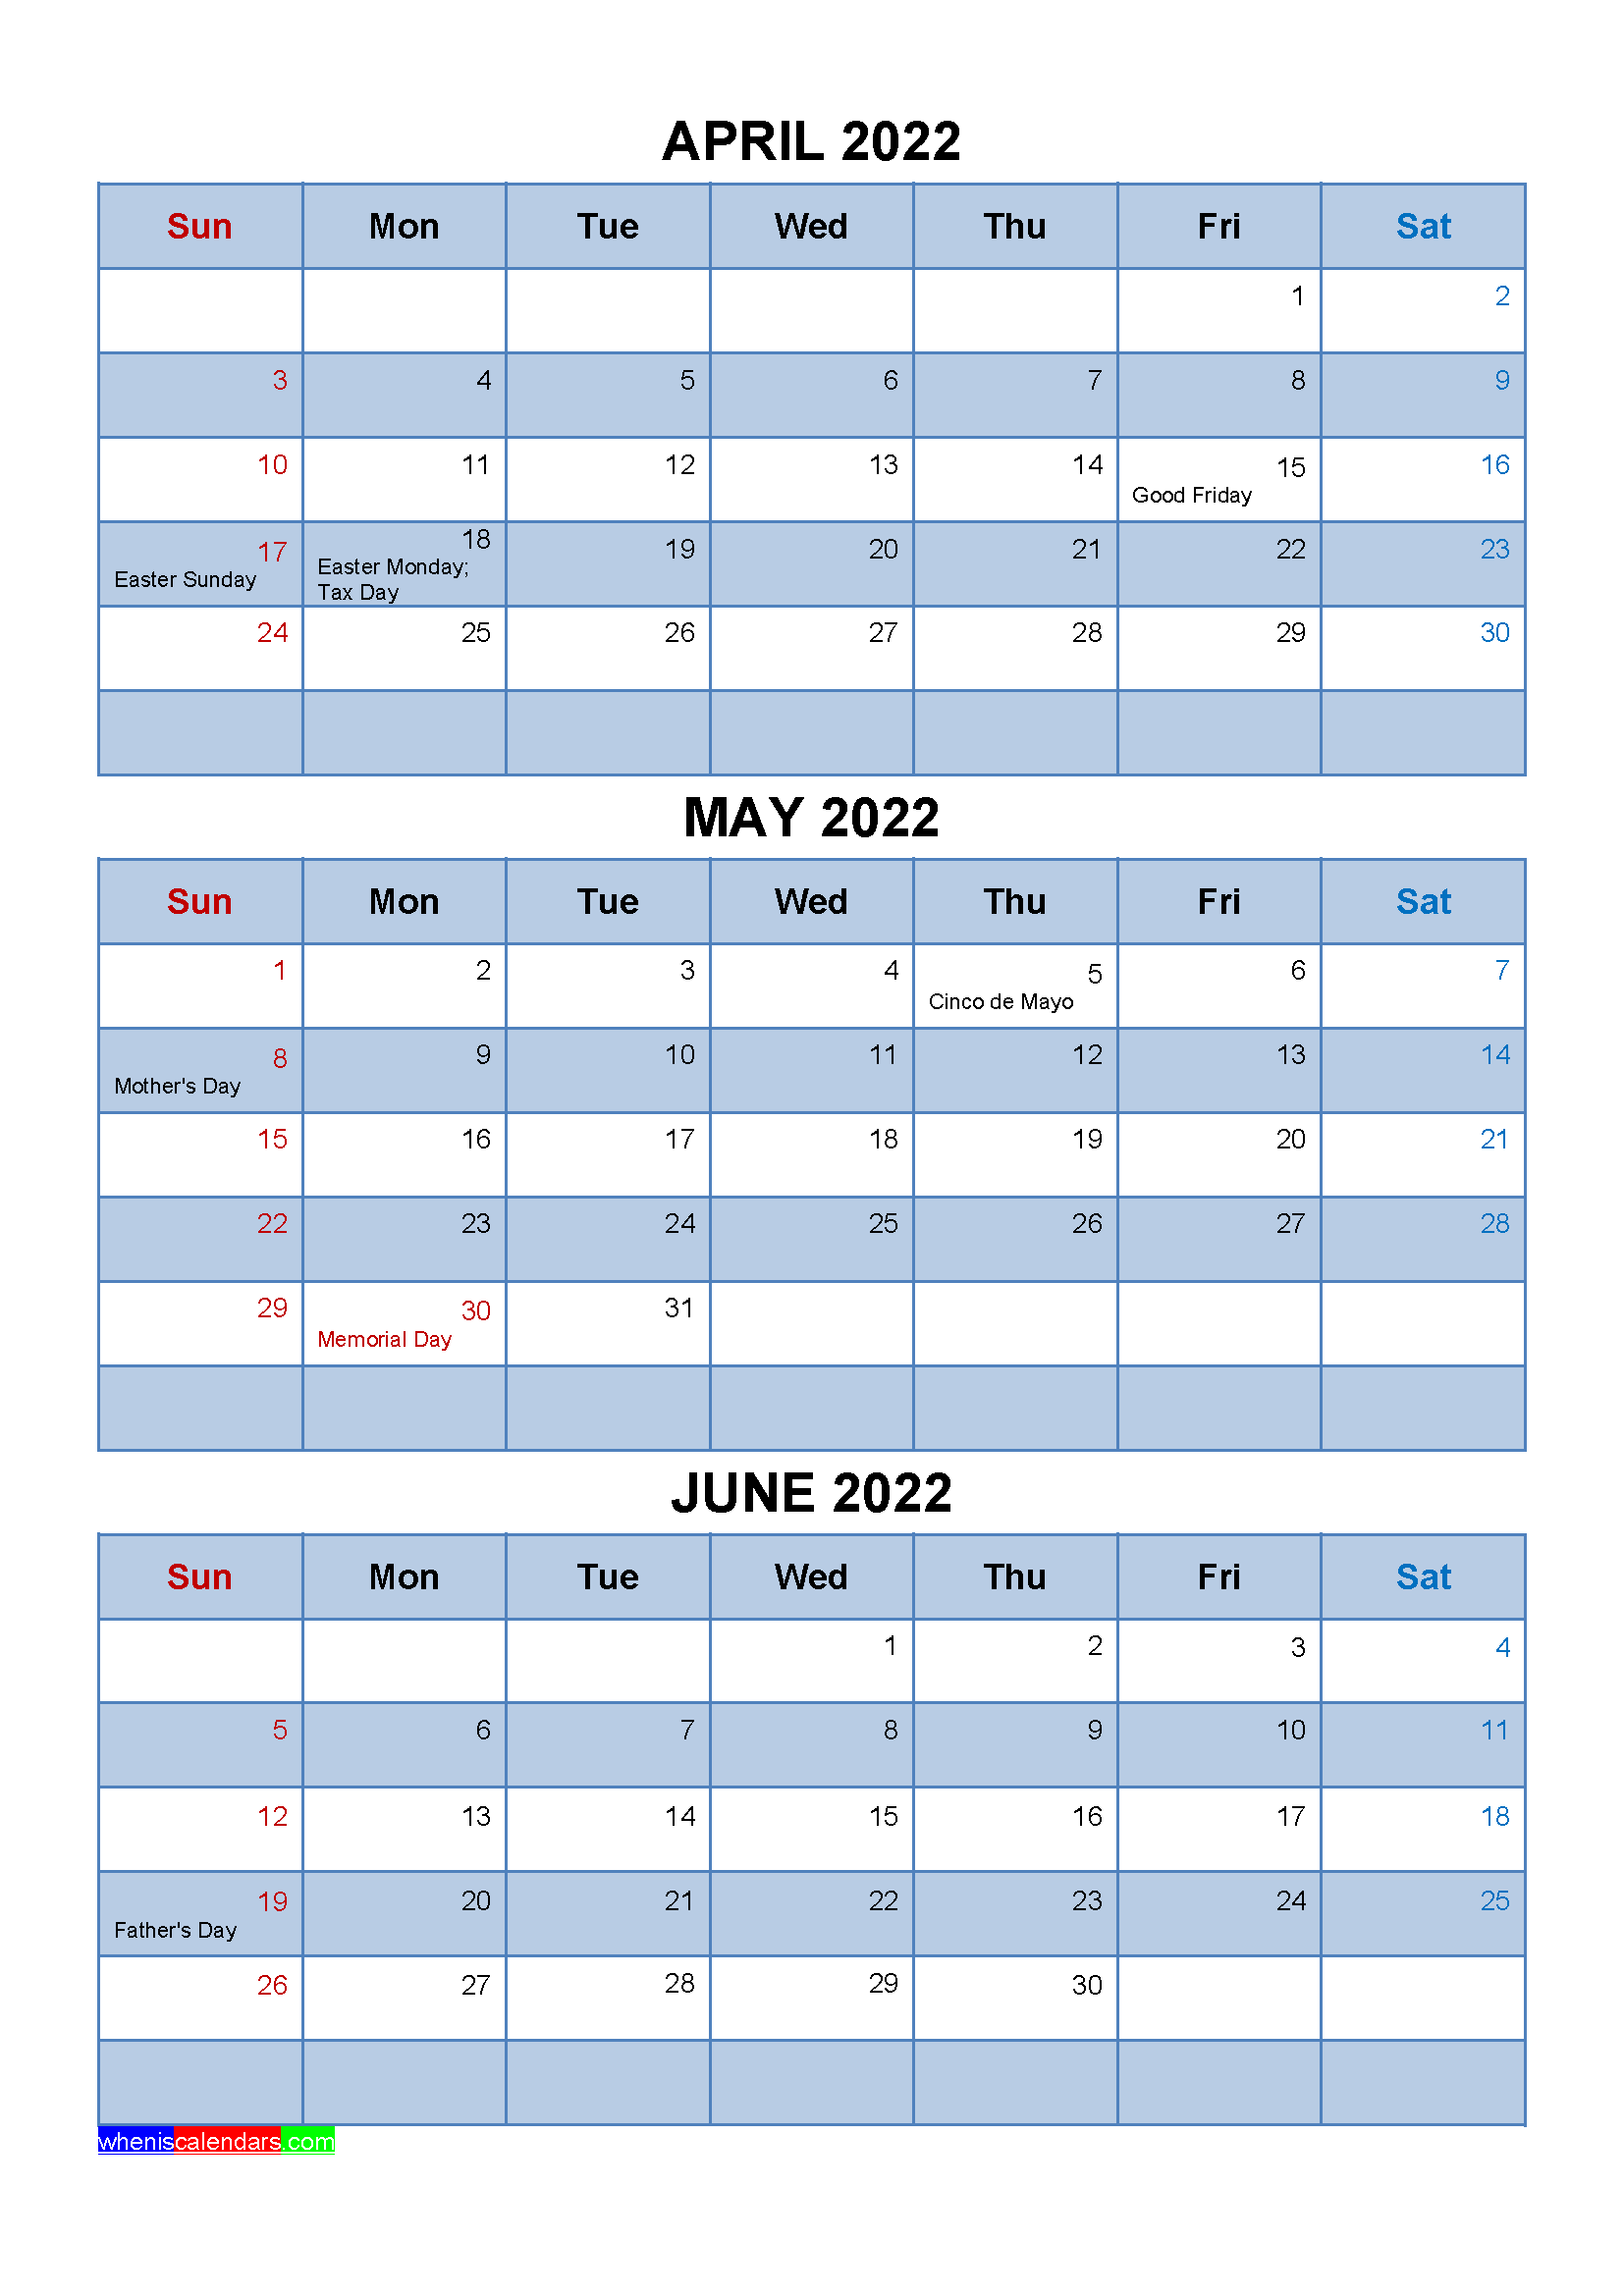 Free Calendar April May June 2022 with Holidays